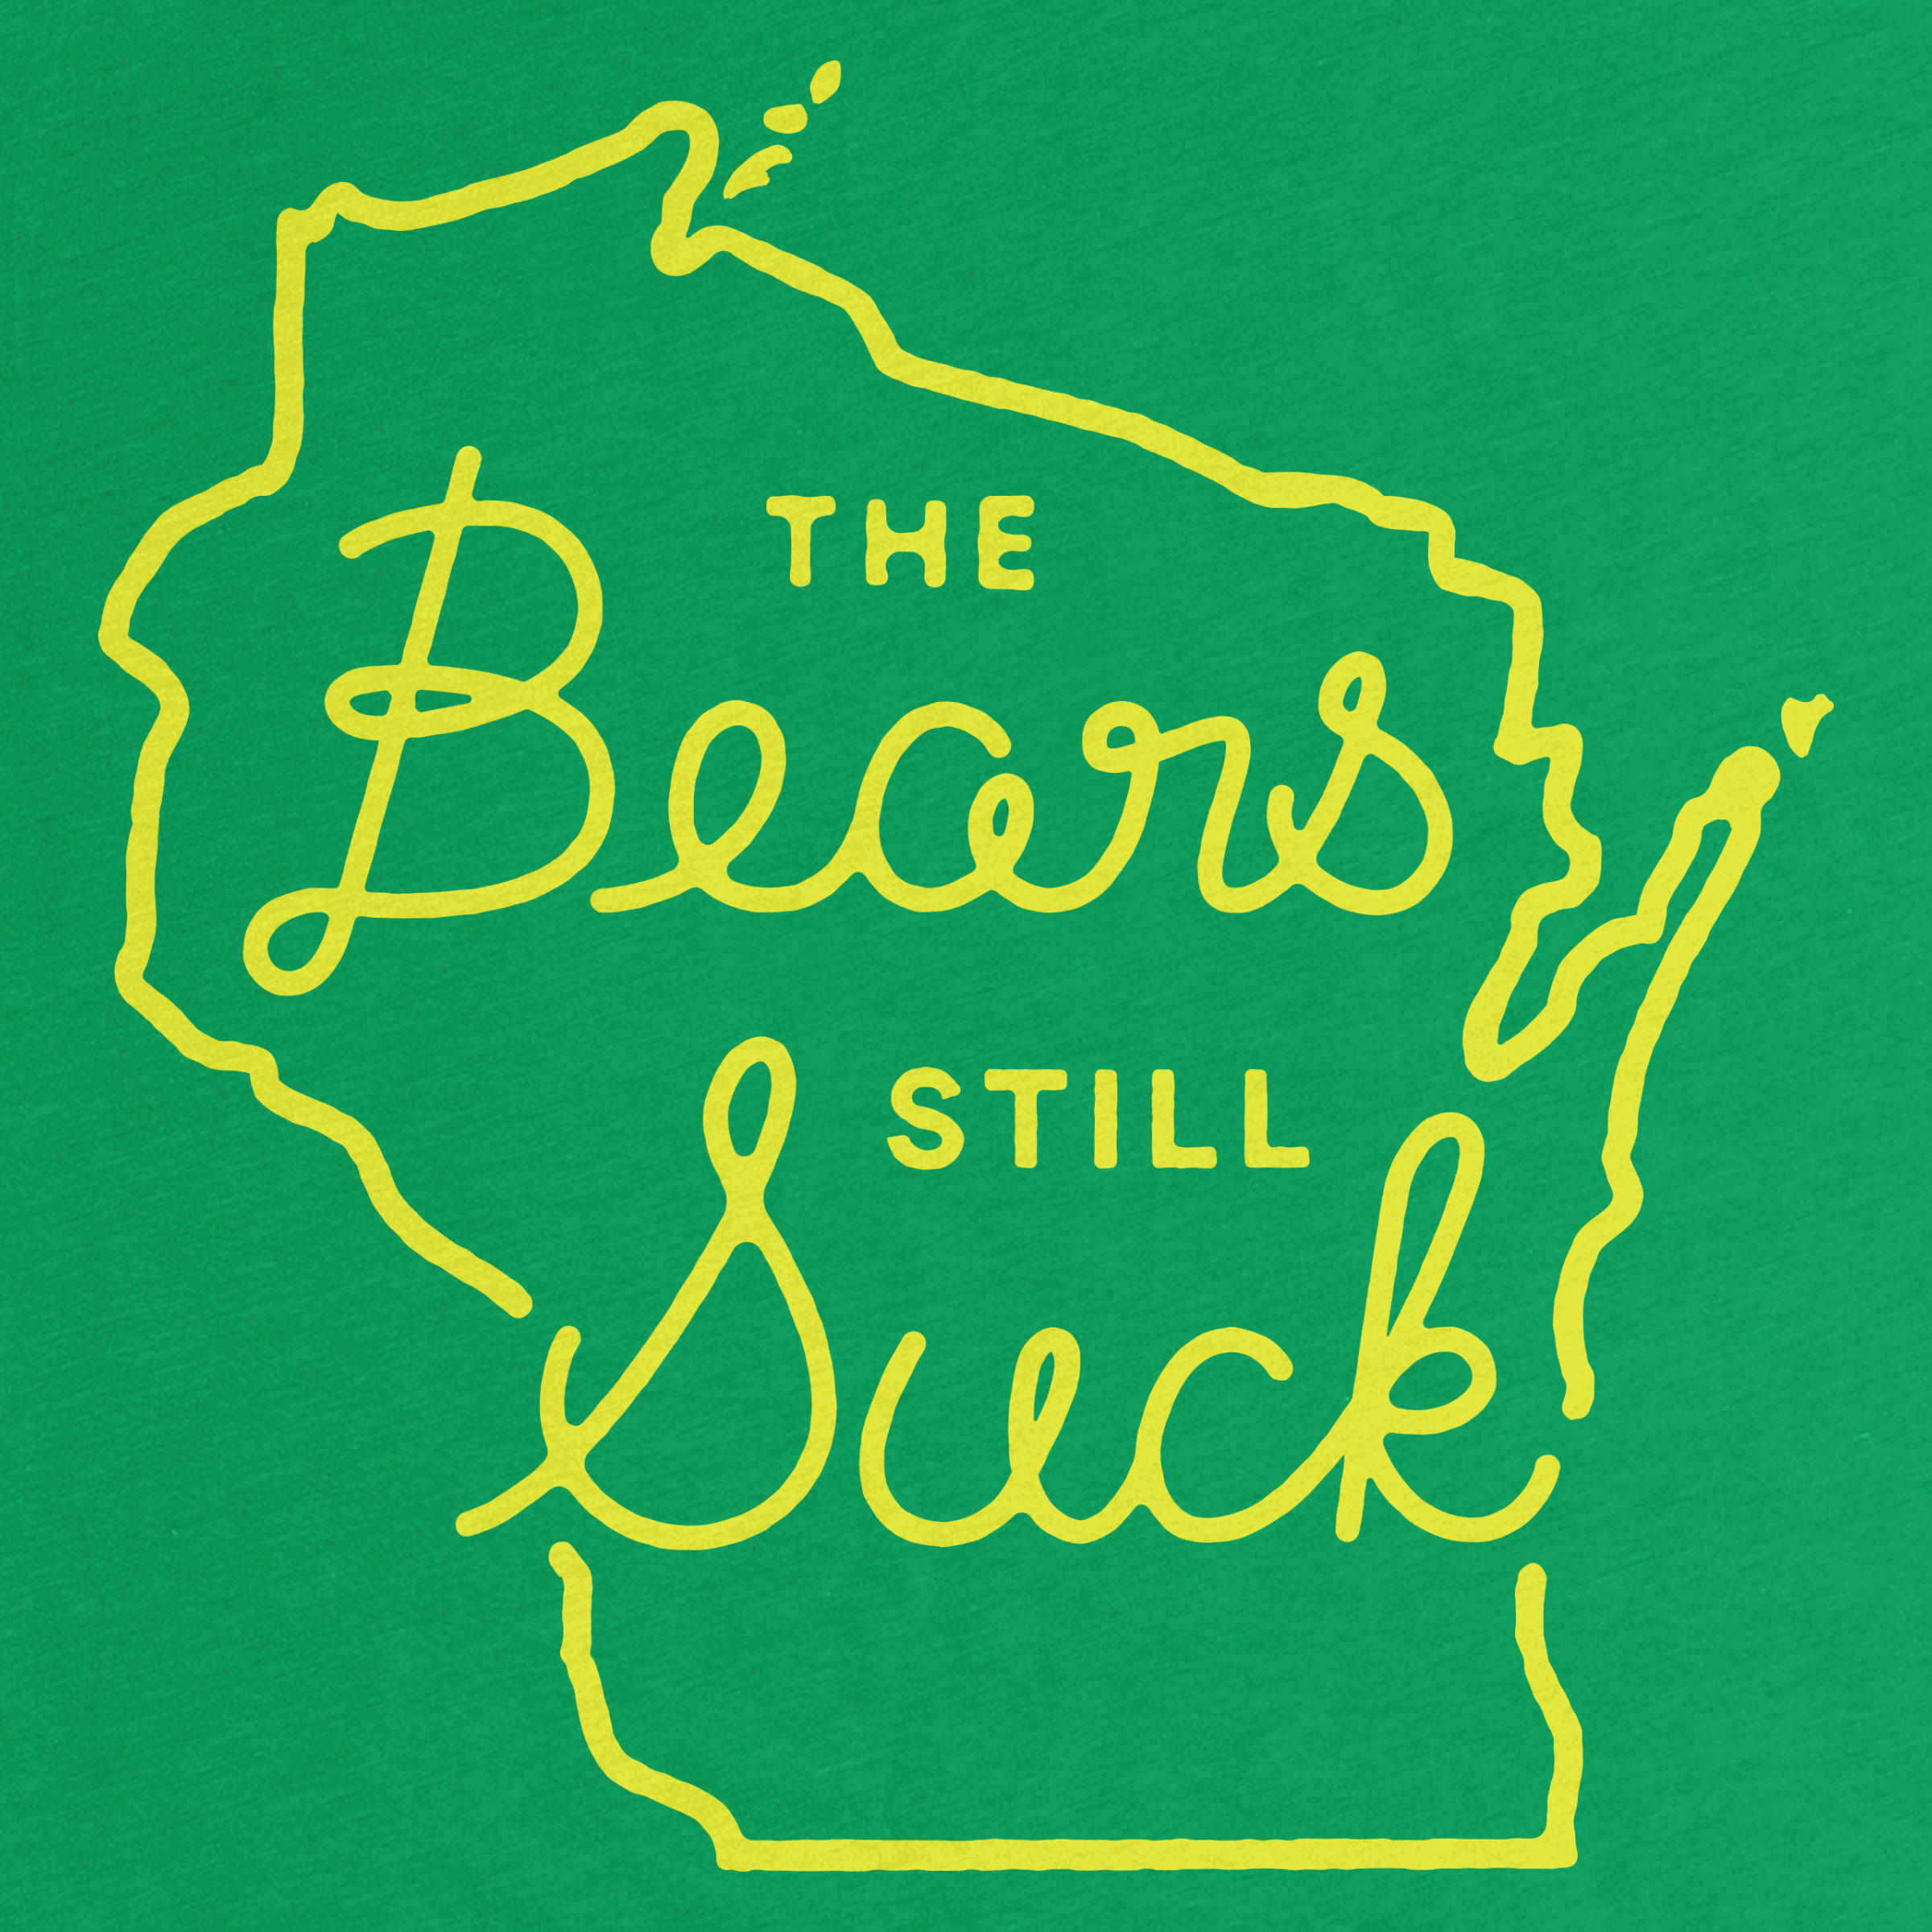 The Bears Still Suck